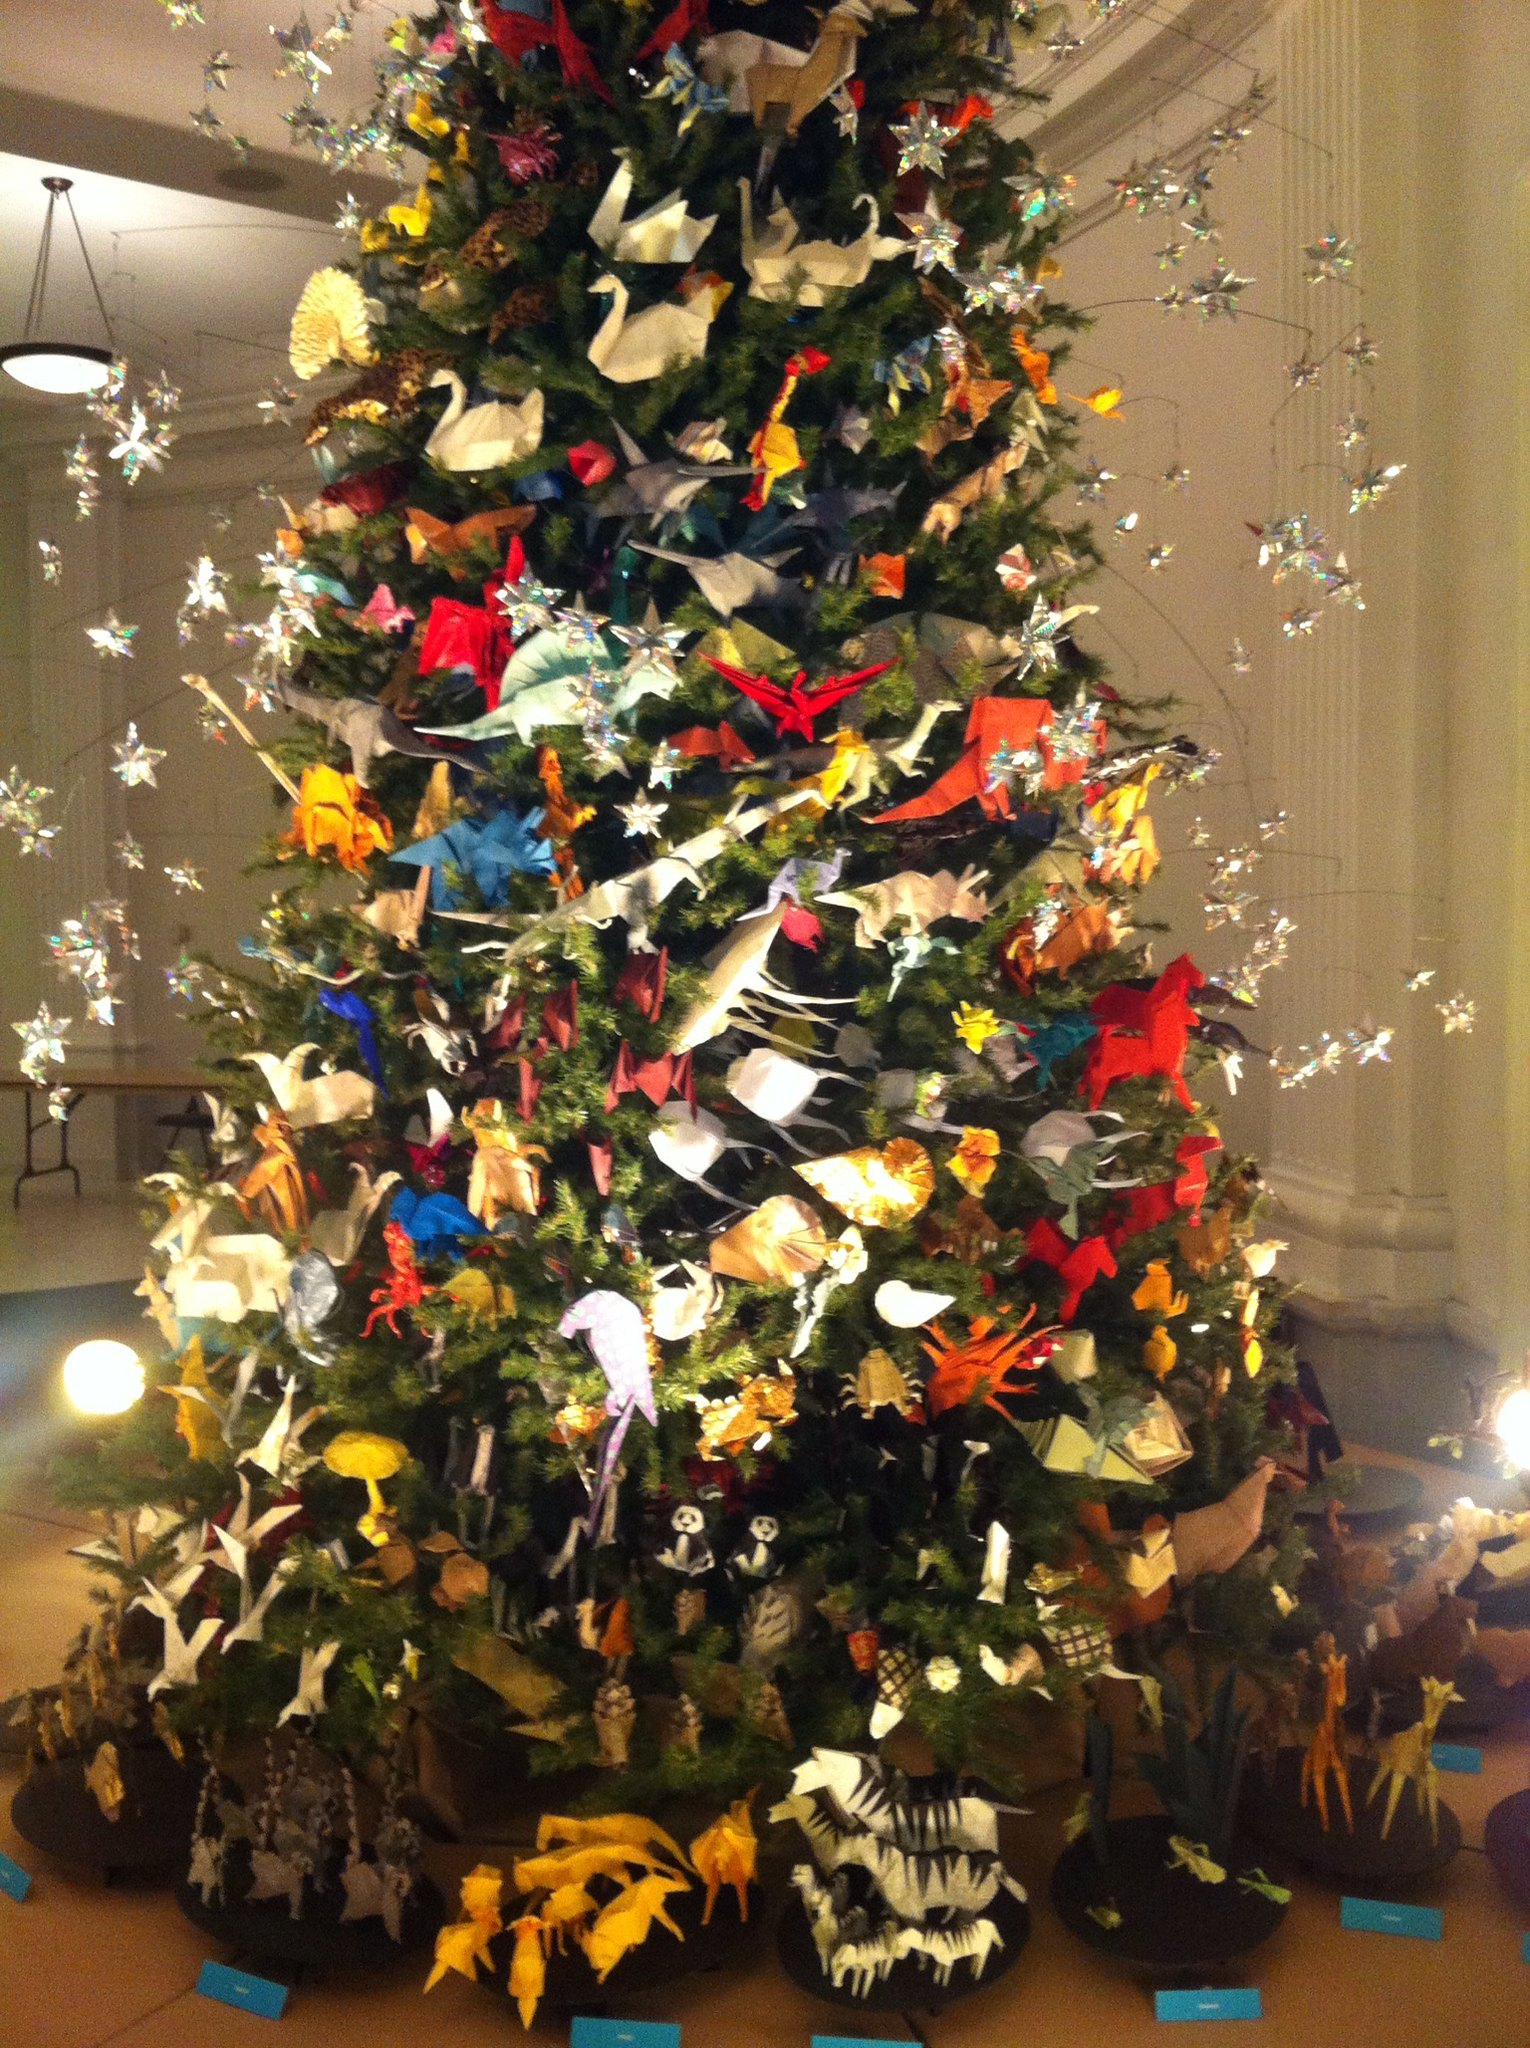 Origami Tree at the American Museum of Natural History